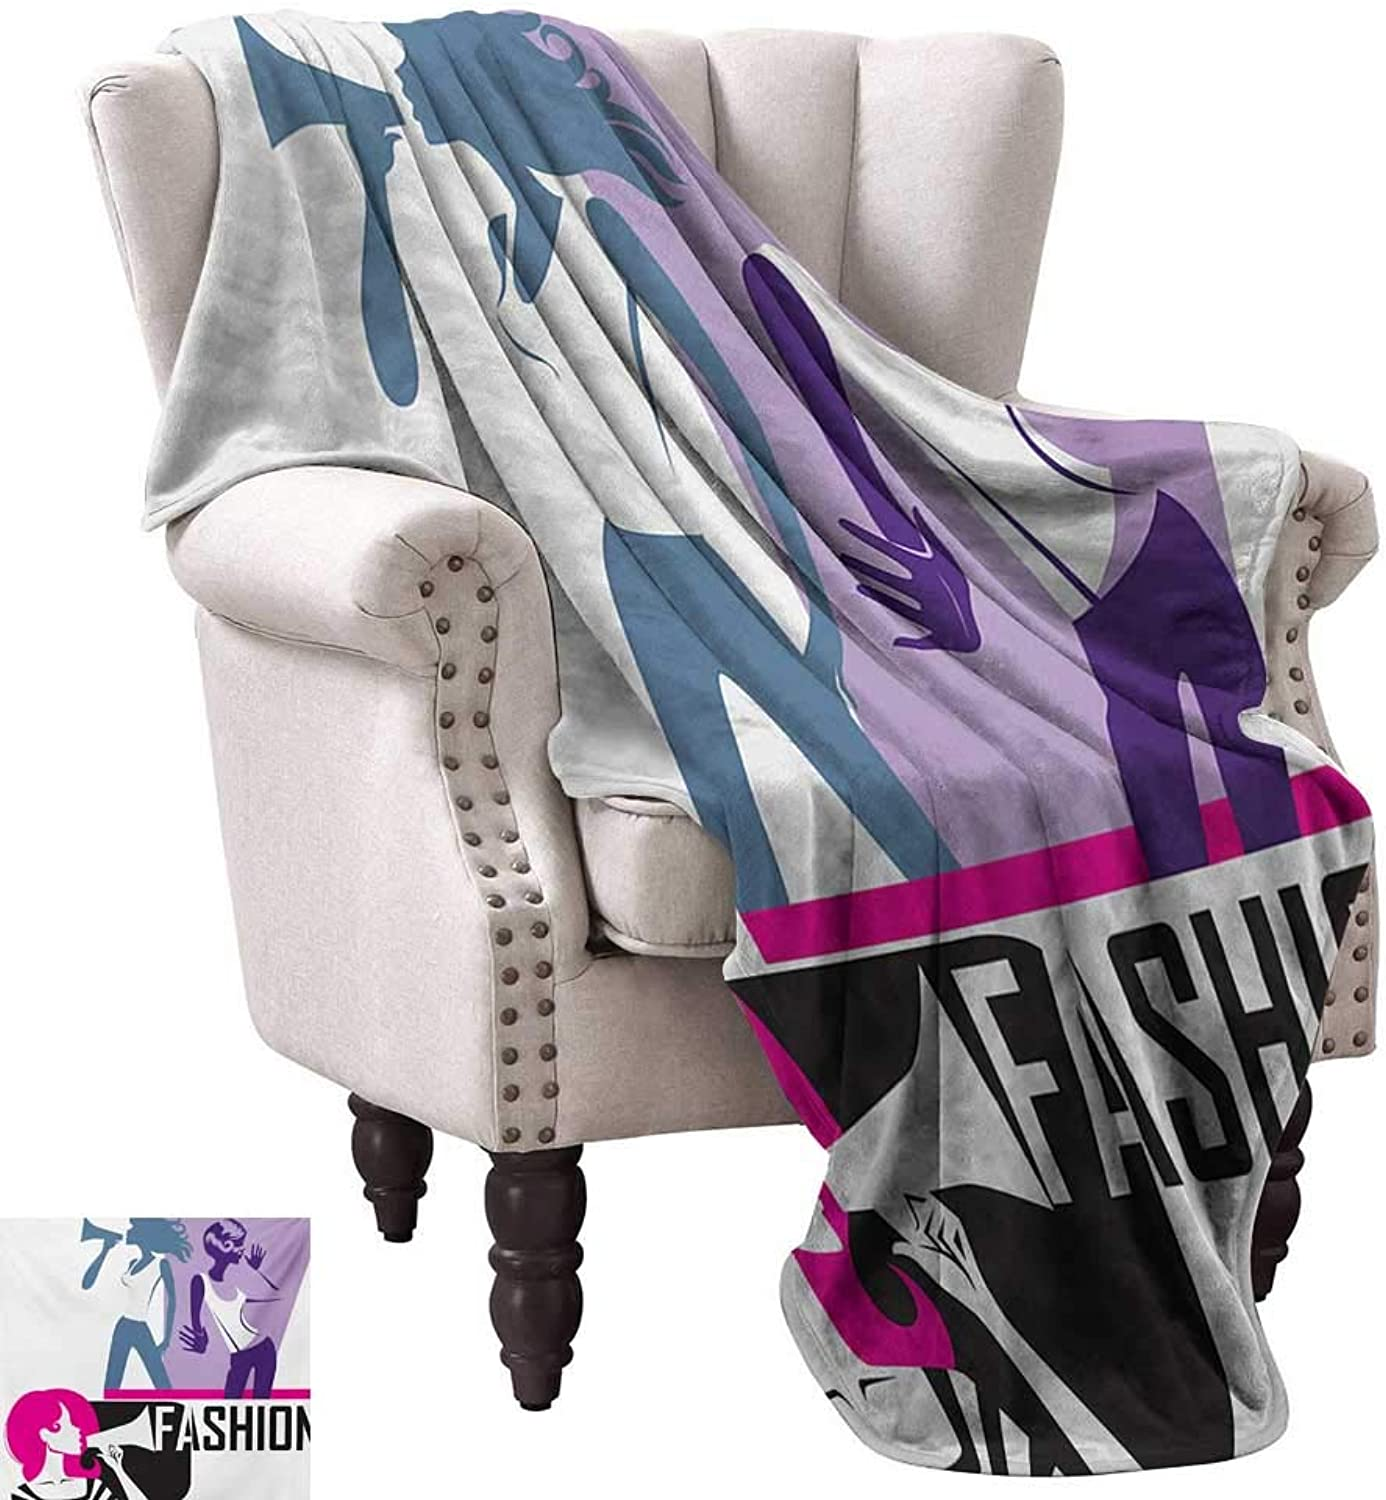 Lightweight Blanket,Composition of Girls Yelling into Megaphone Modern Stylish Fashion Themed Art 60 x50 ,Super Soft and Comfortable,Suitable for Sofas,Chairs,beds